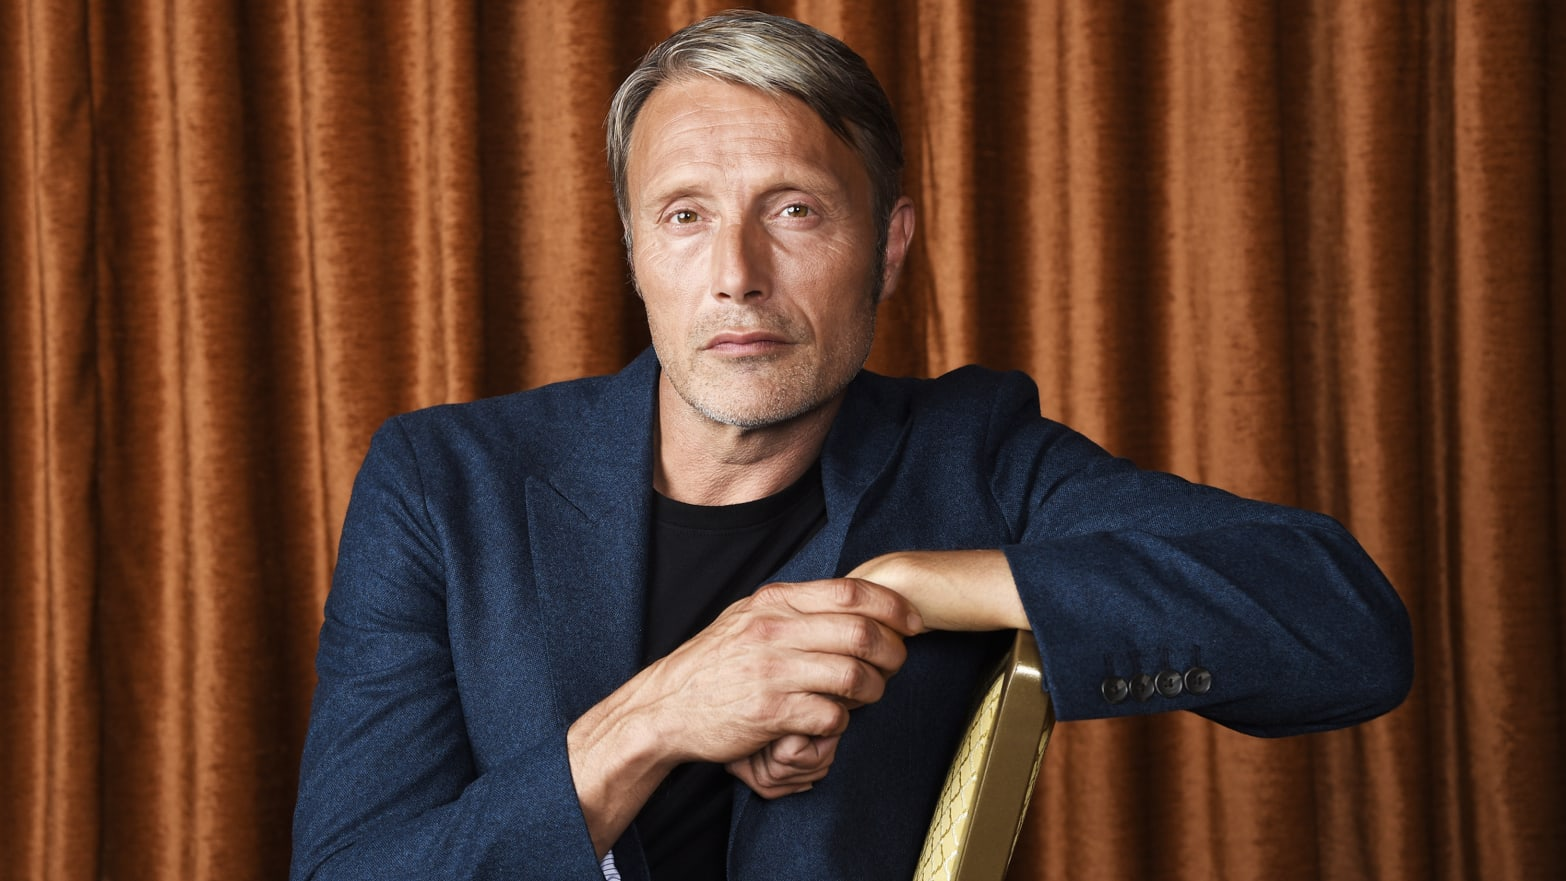 Mads Mikkelsen, Smoldering Sex Symbol, Is Ready To Kick